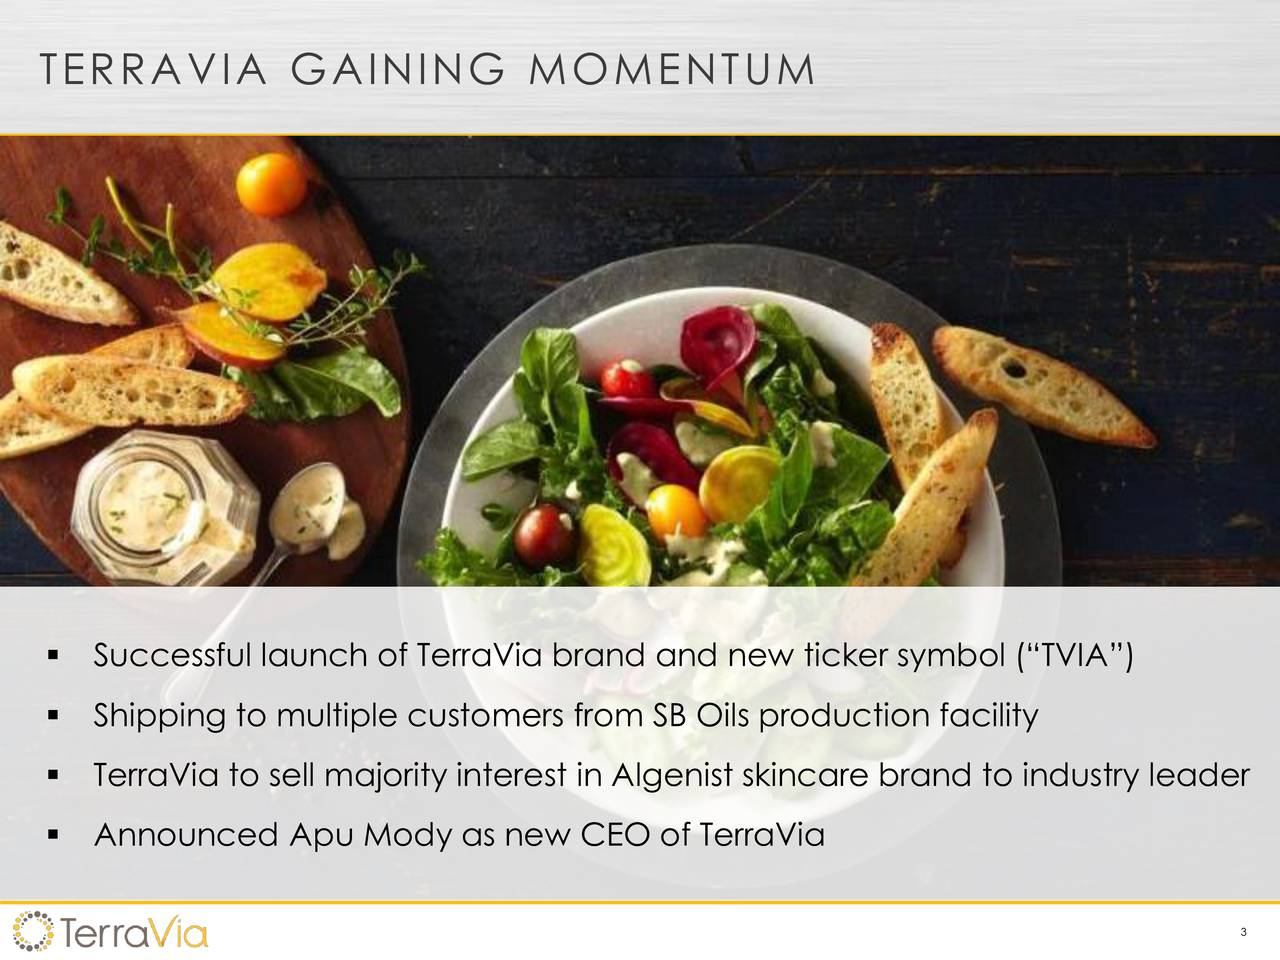 Successful launch of TerraVia brand and new ticker symbol (TVIA) Shipping to multiple customers from SB Oils production facility TerraVia to sell majority interest in Algenist skincare brand to industry leader Announced Apu Mody as new CEO of TerraVia 3